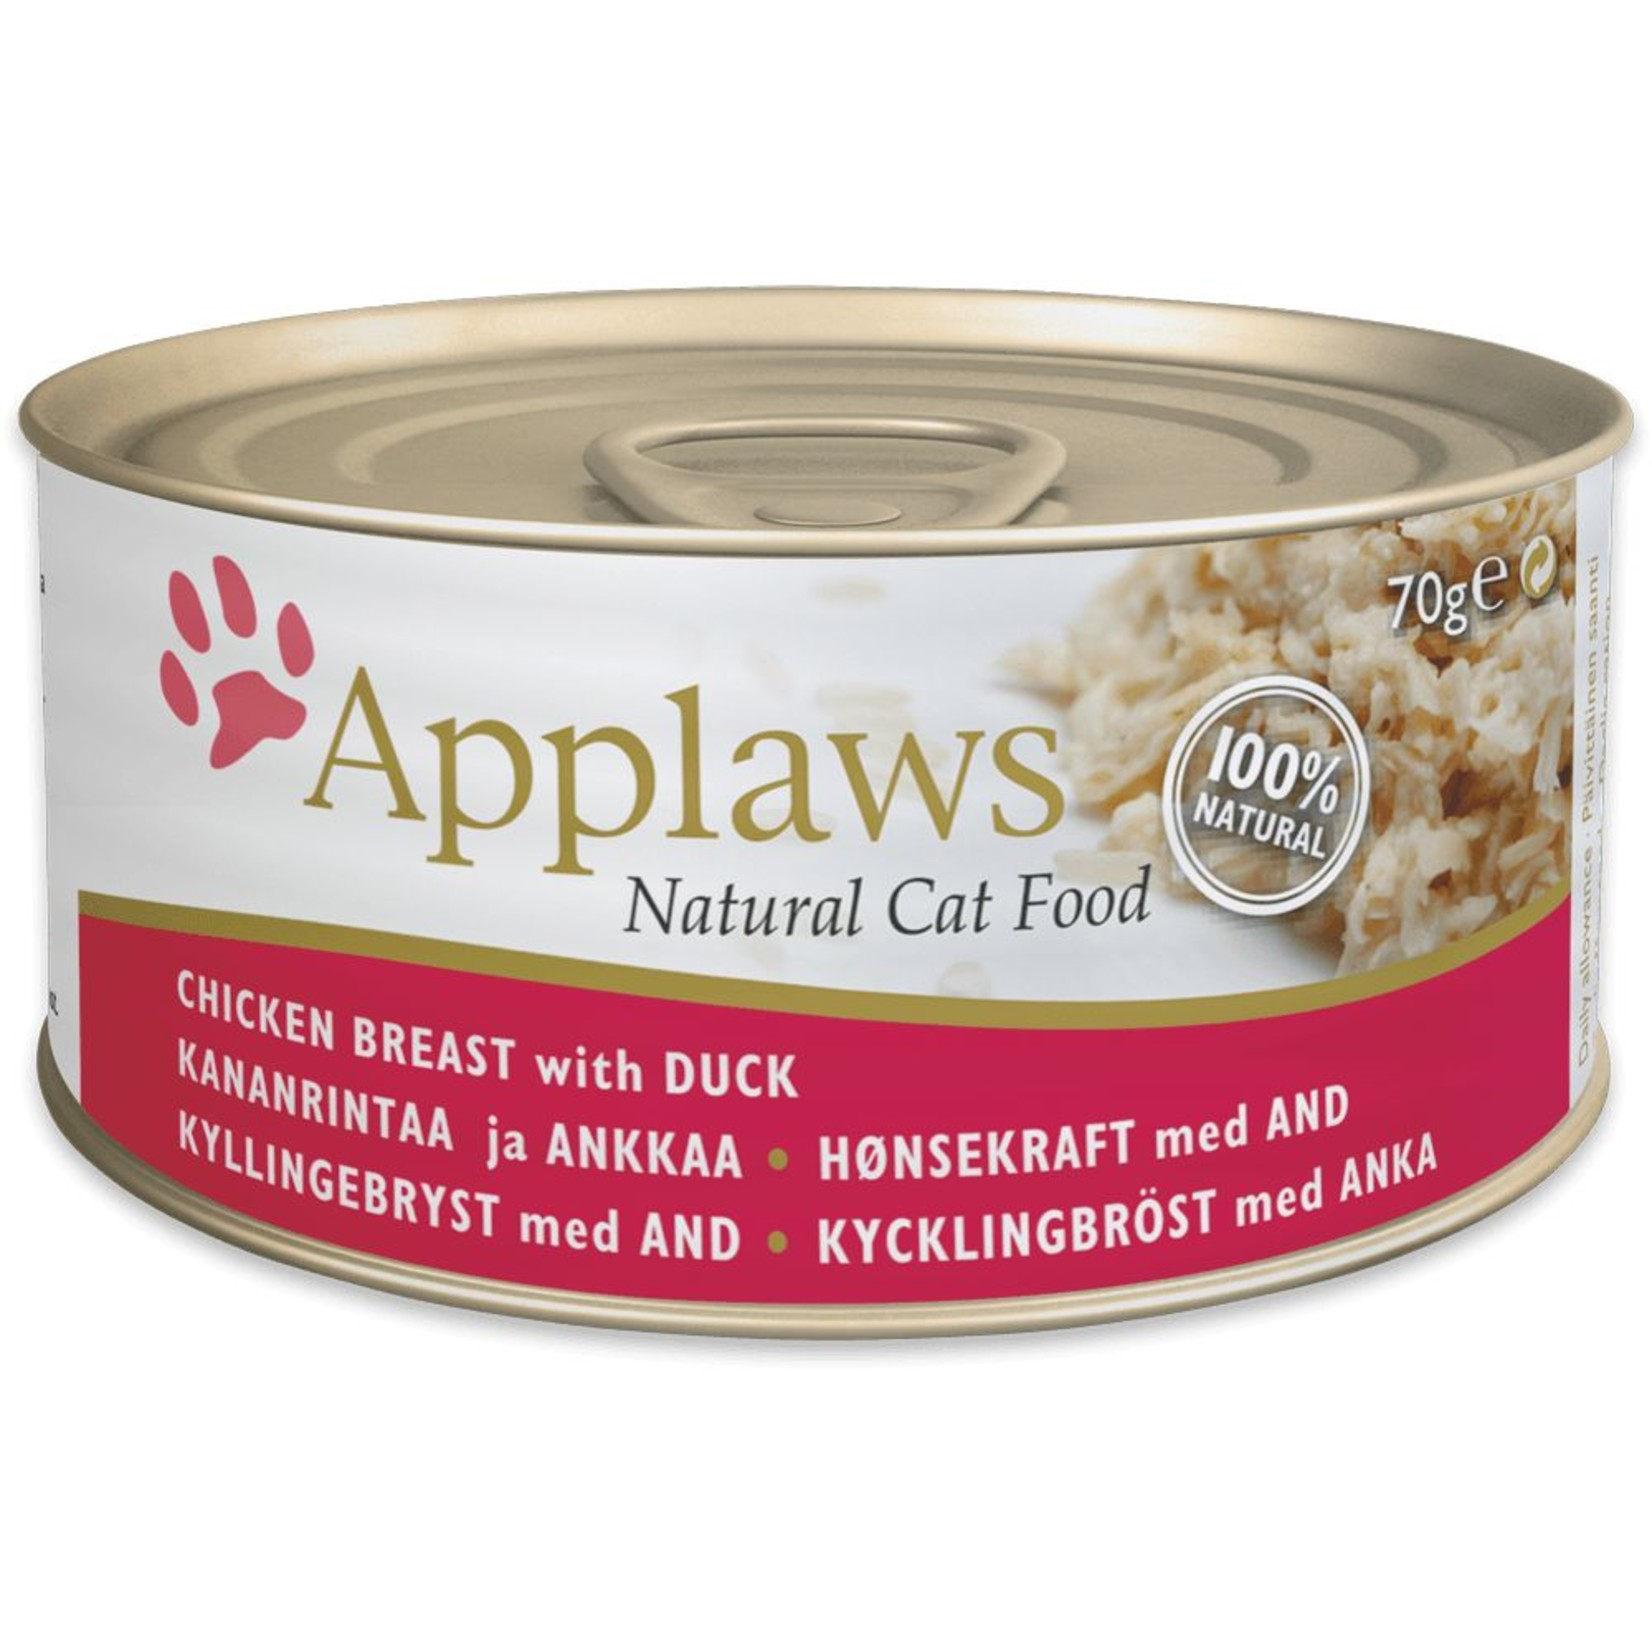 Applaws Cat Wet Food Chicken Breast with Duck, 70g